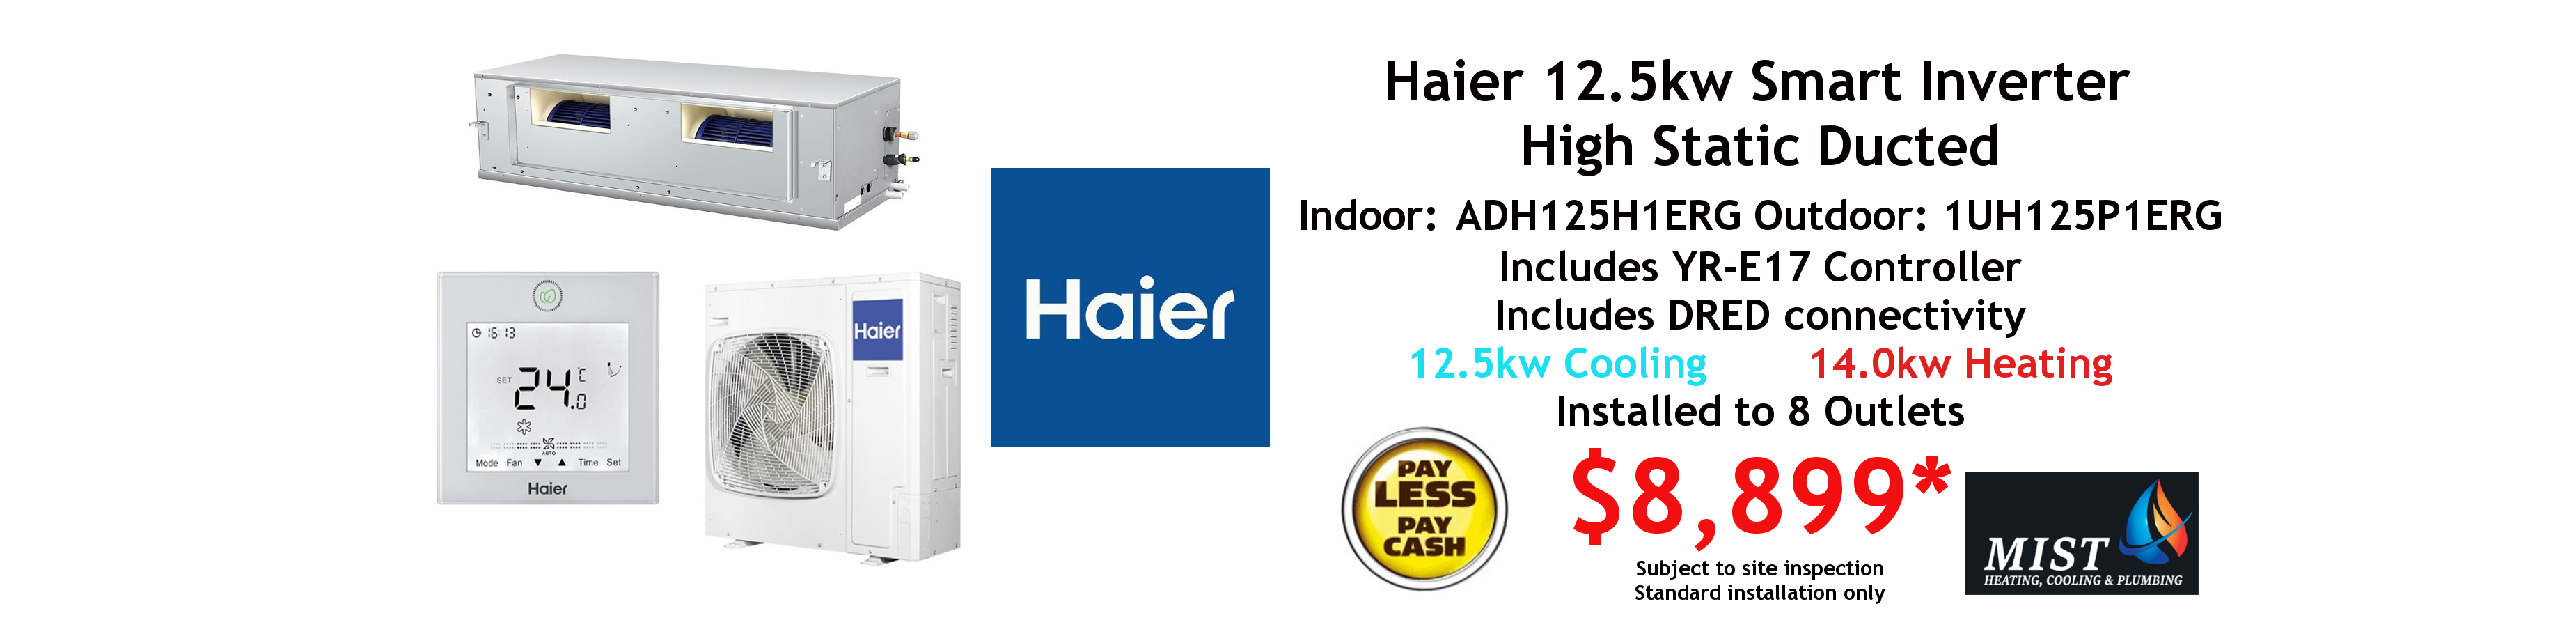 haier ducted 12.5kw